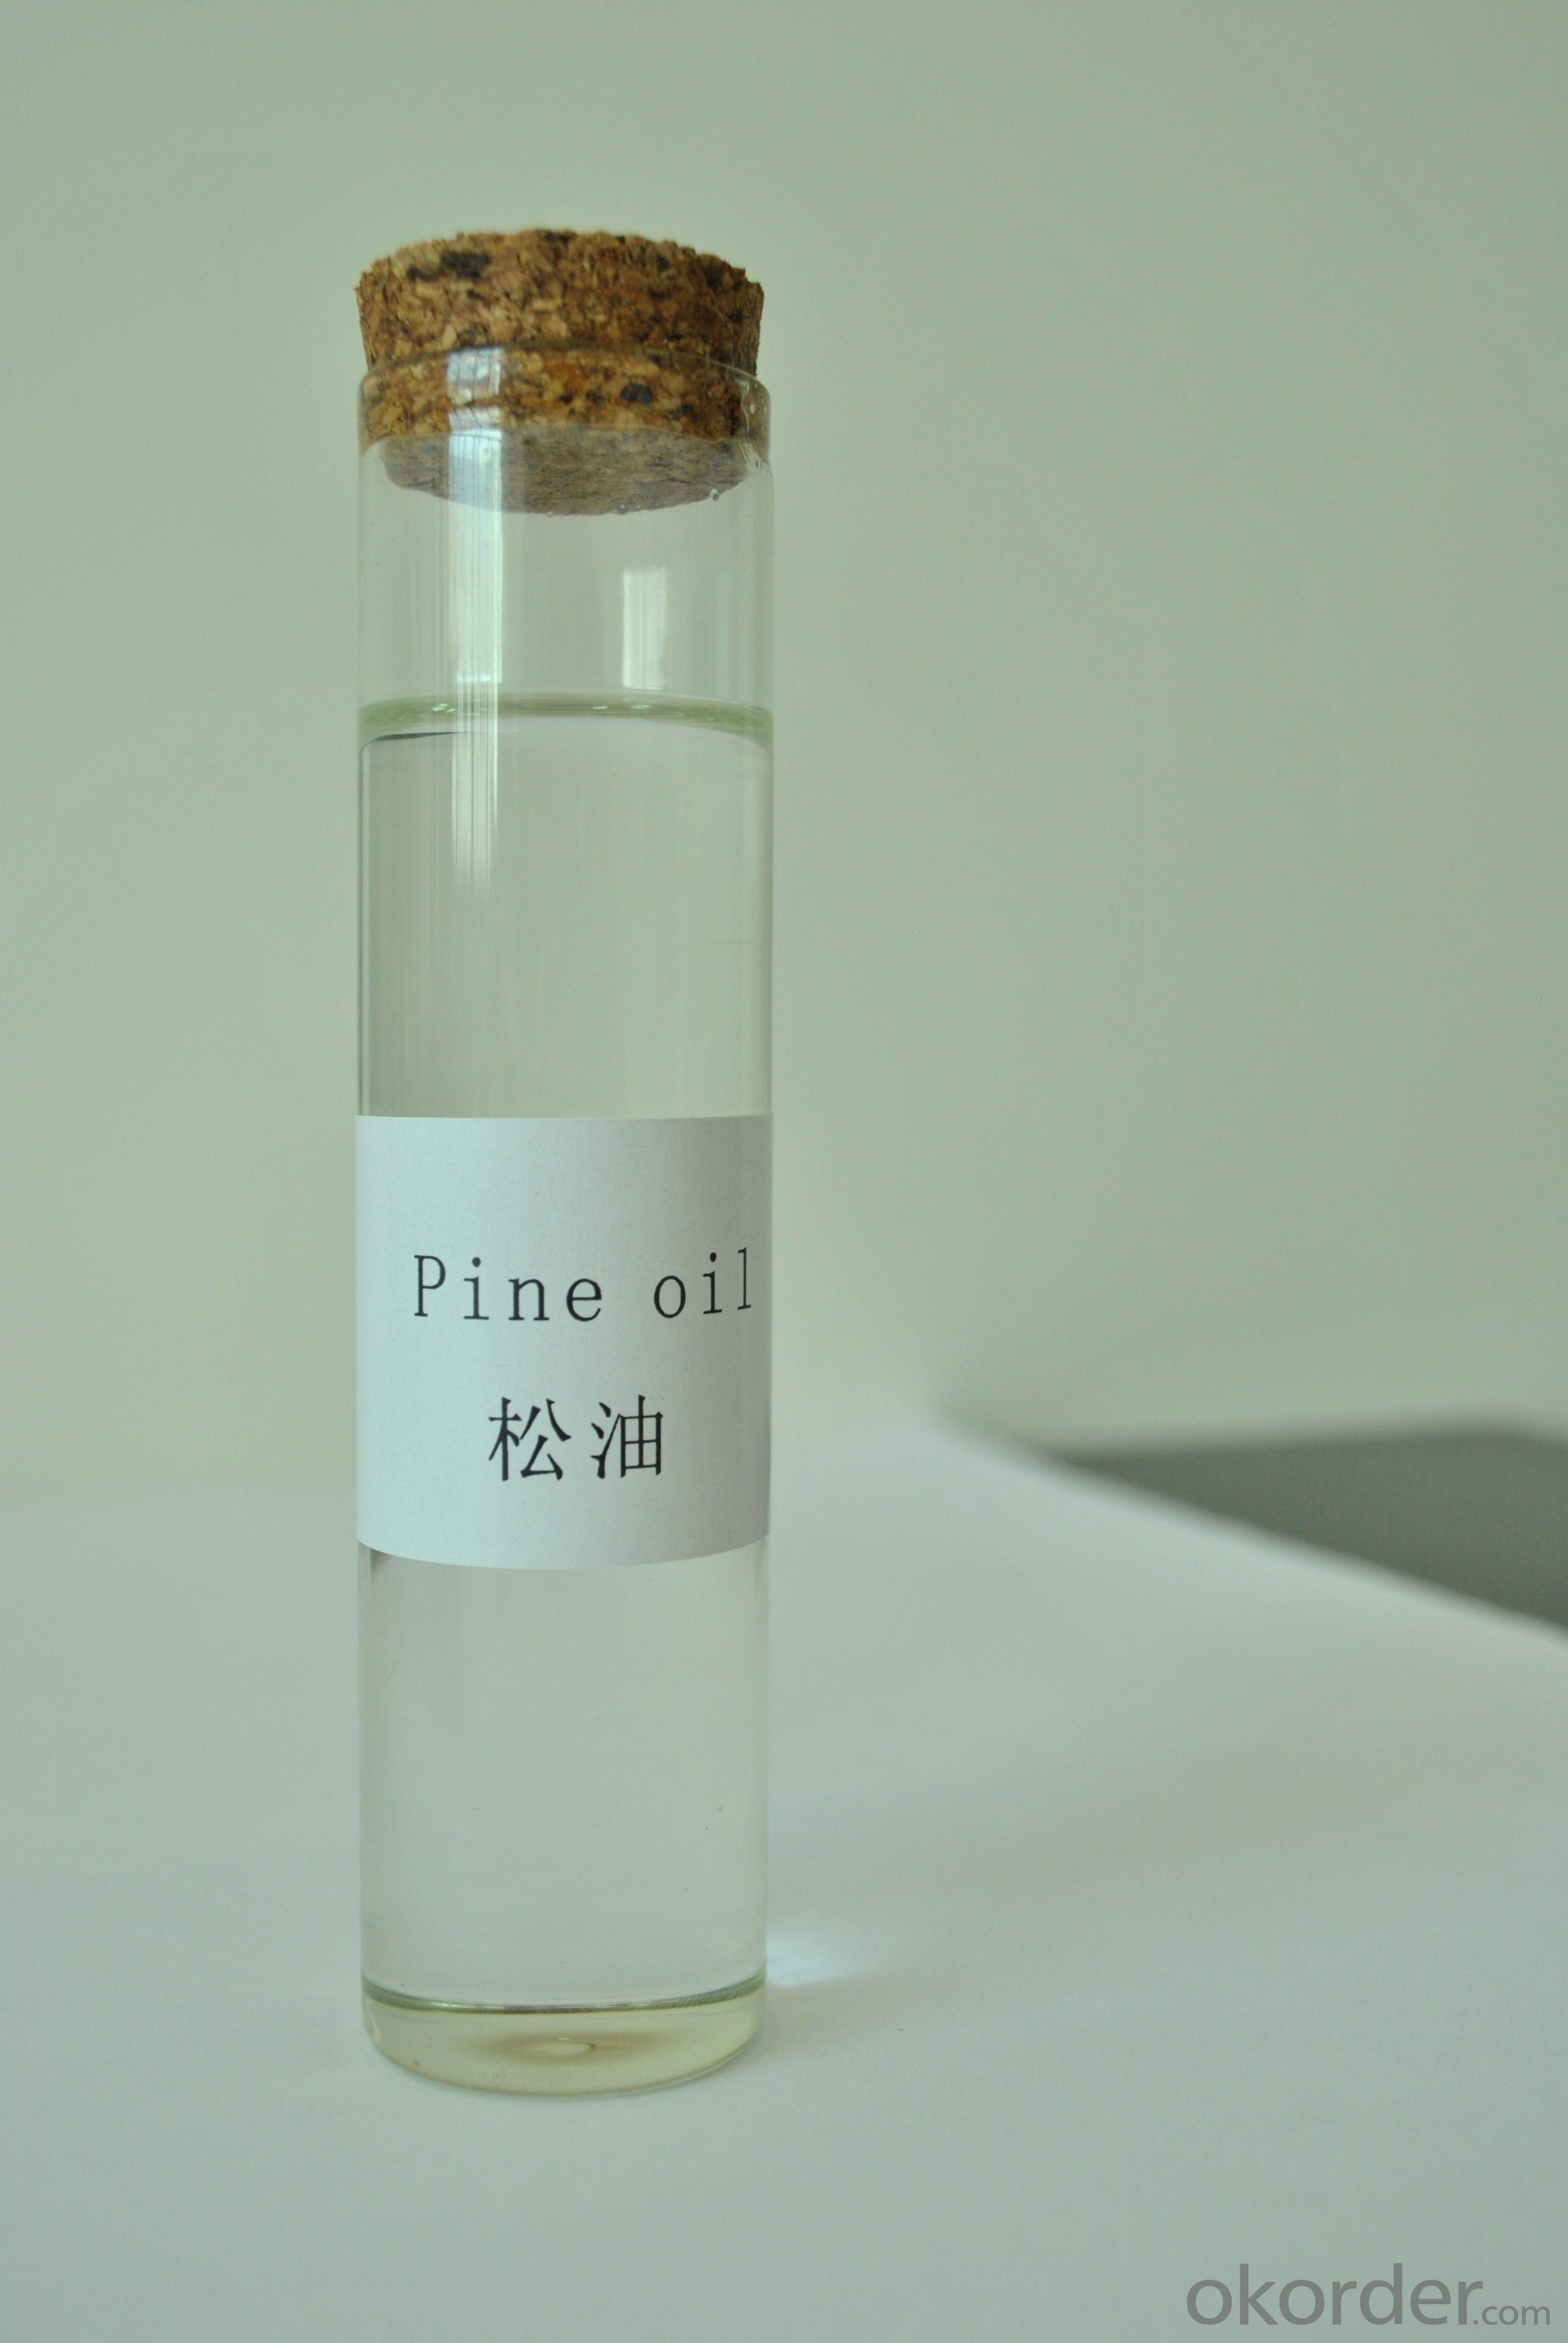 Pine Oil85% With Competitive Price and Good Quality and Strong Package